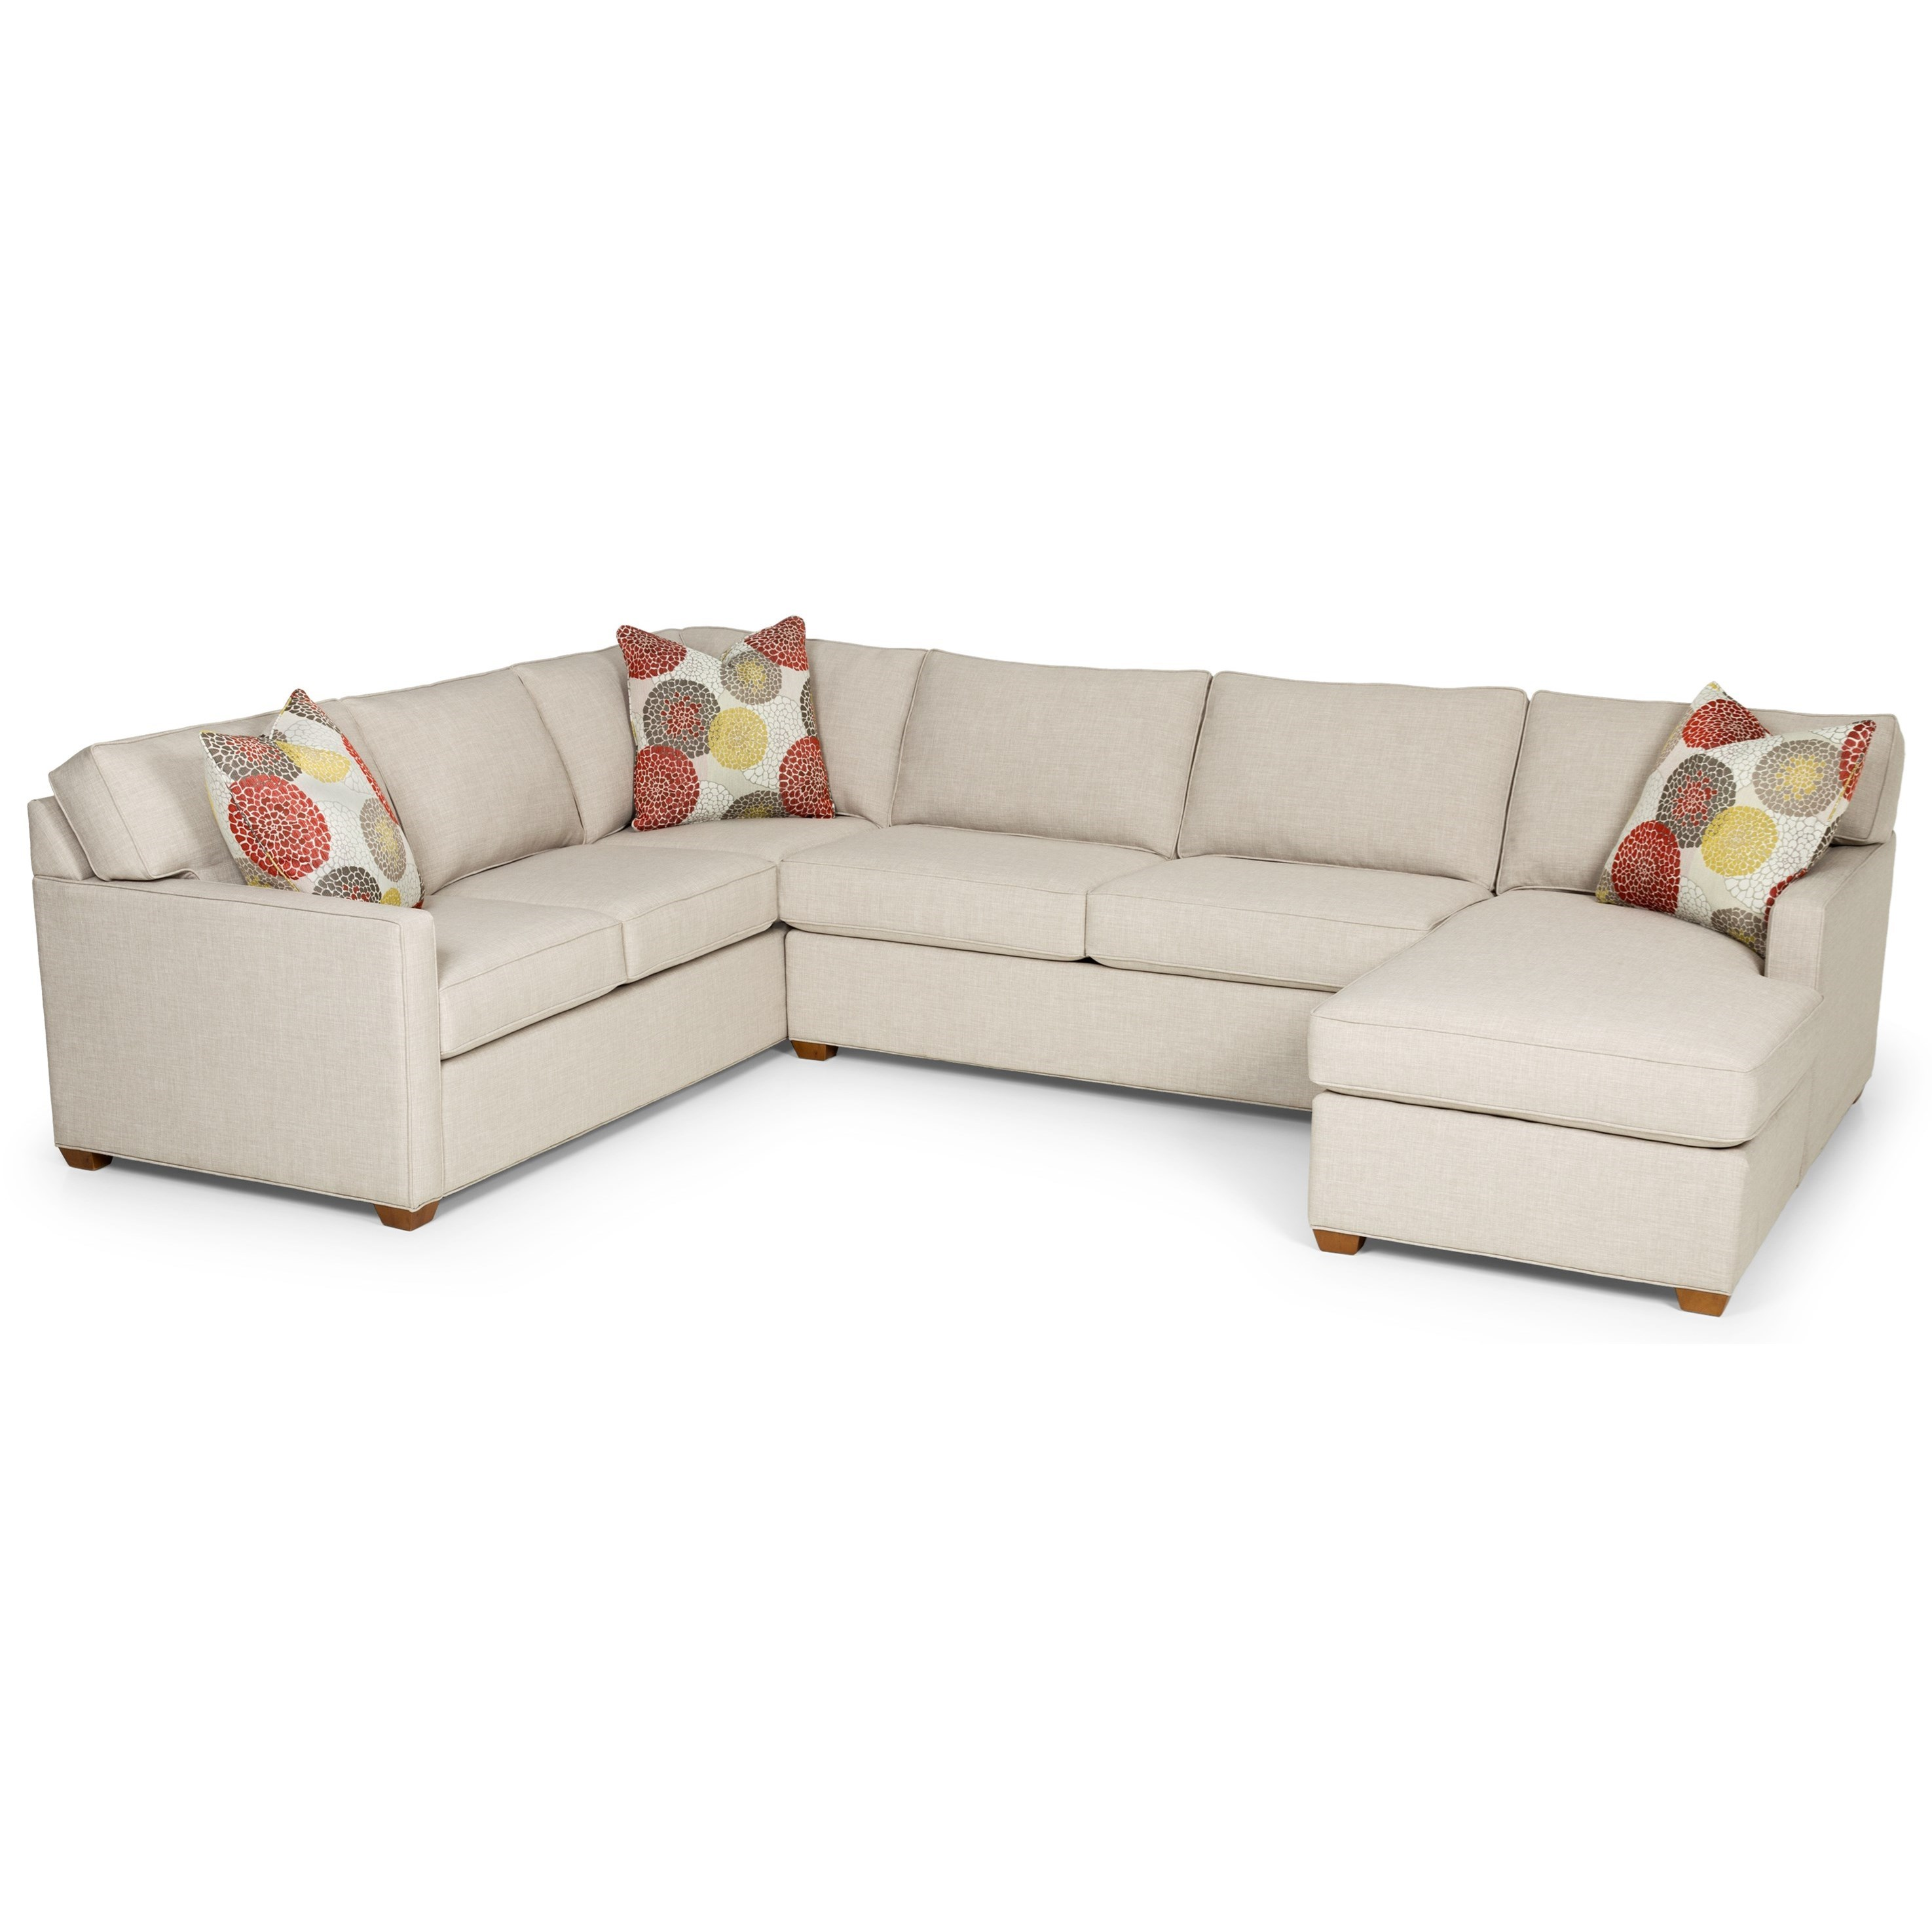 287 Sectional Sofa by Stanton at Wilson's Furniture